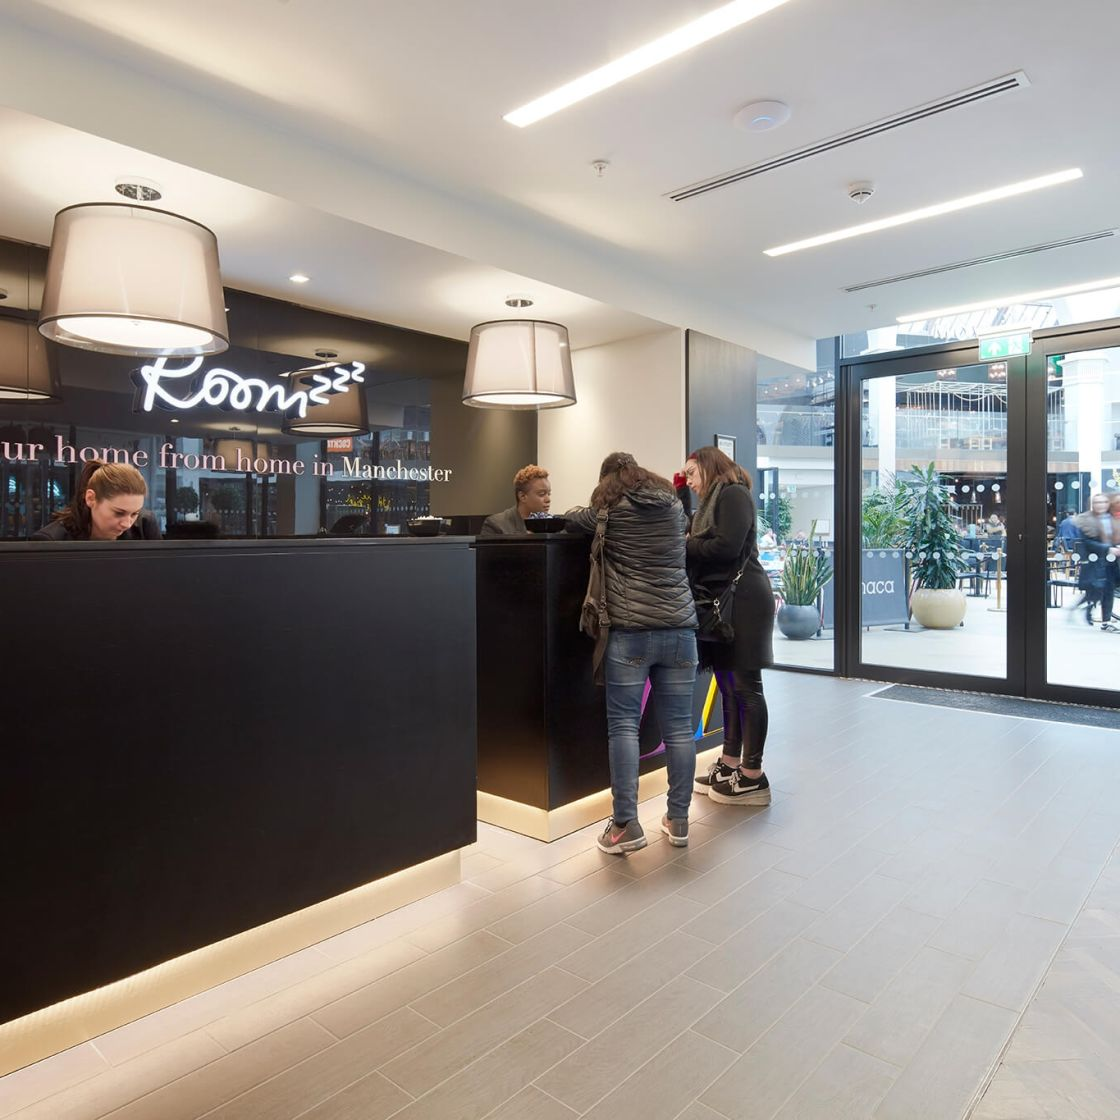 24 Hour reception desk at IconInc @ Roomzzz. Student Accommodation in Manchester